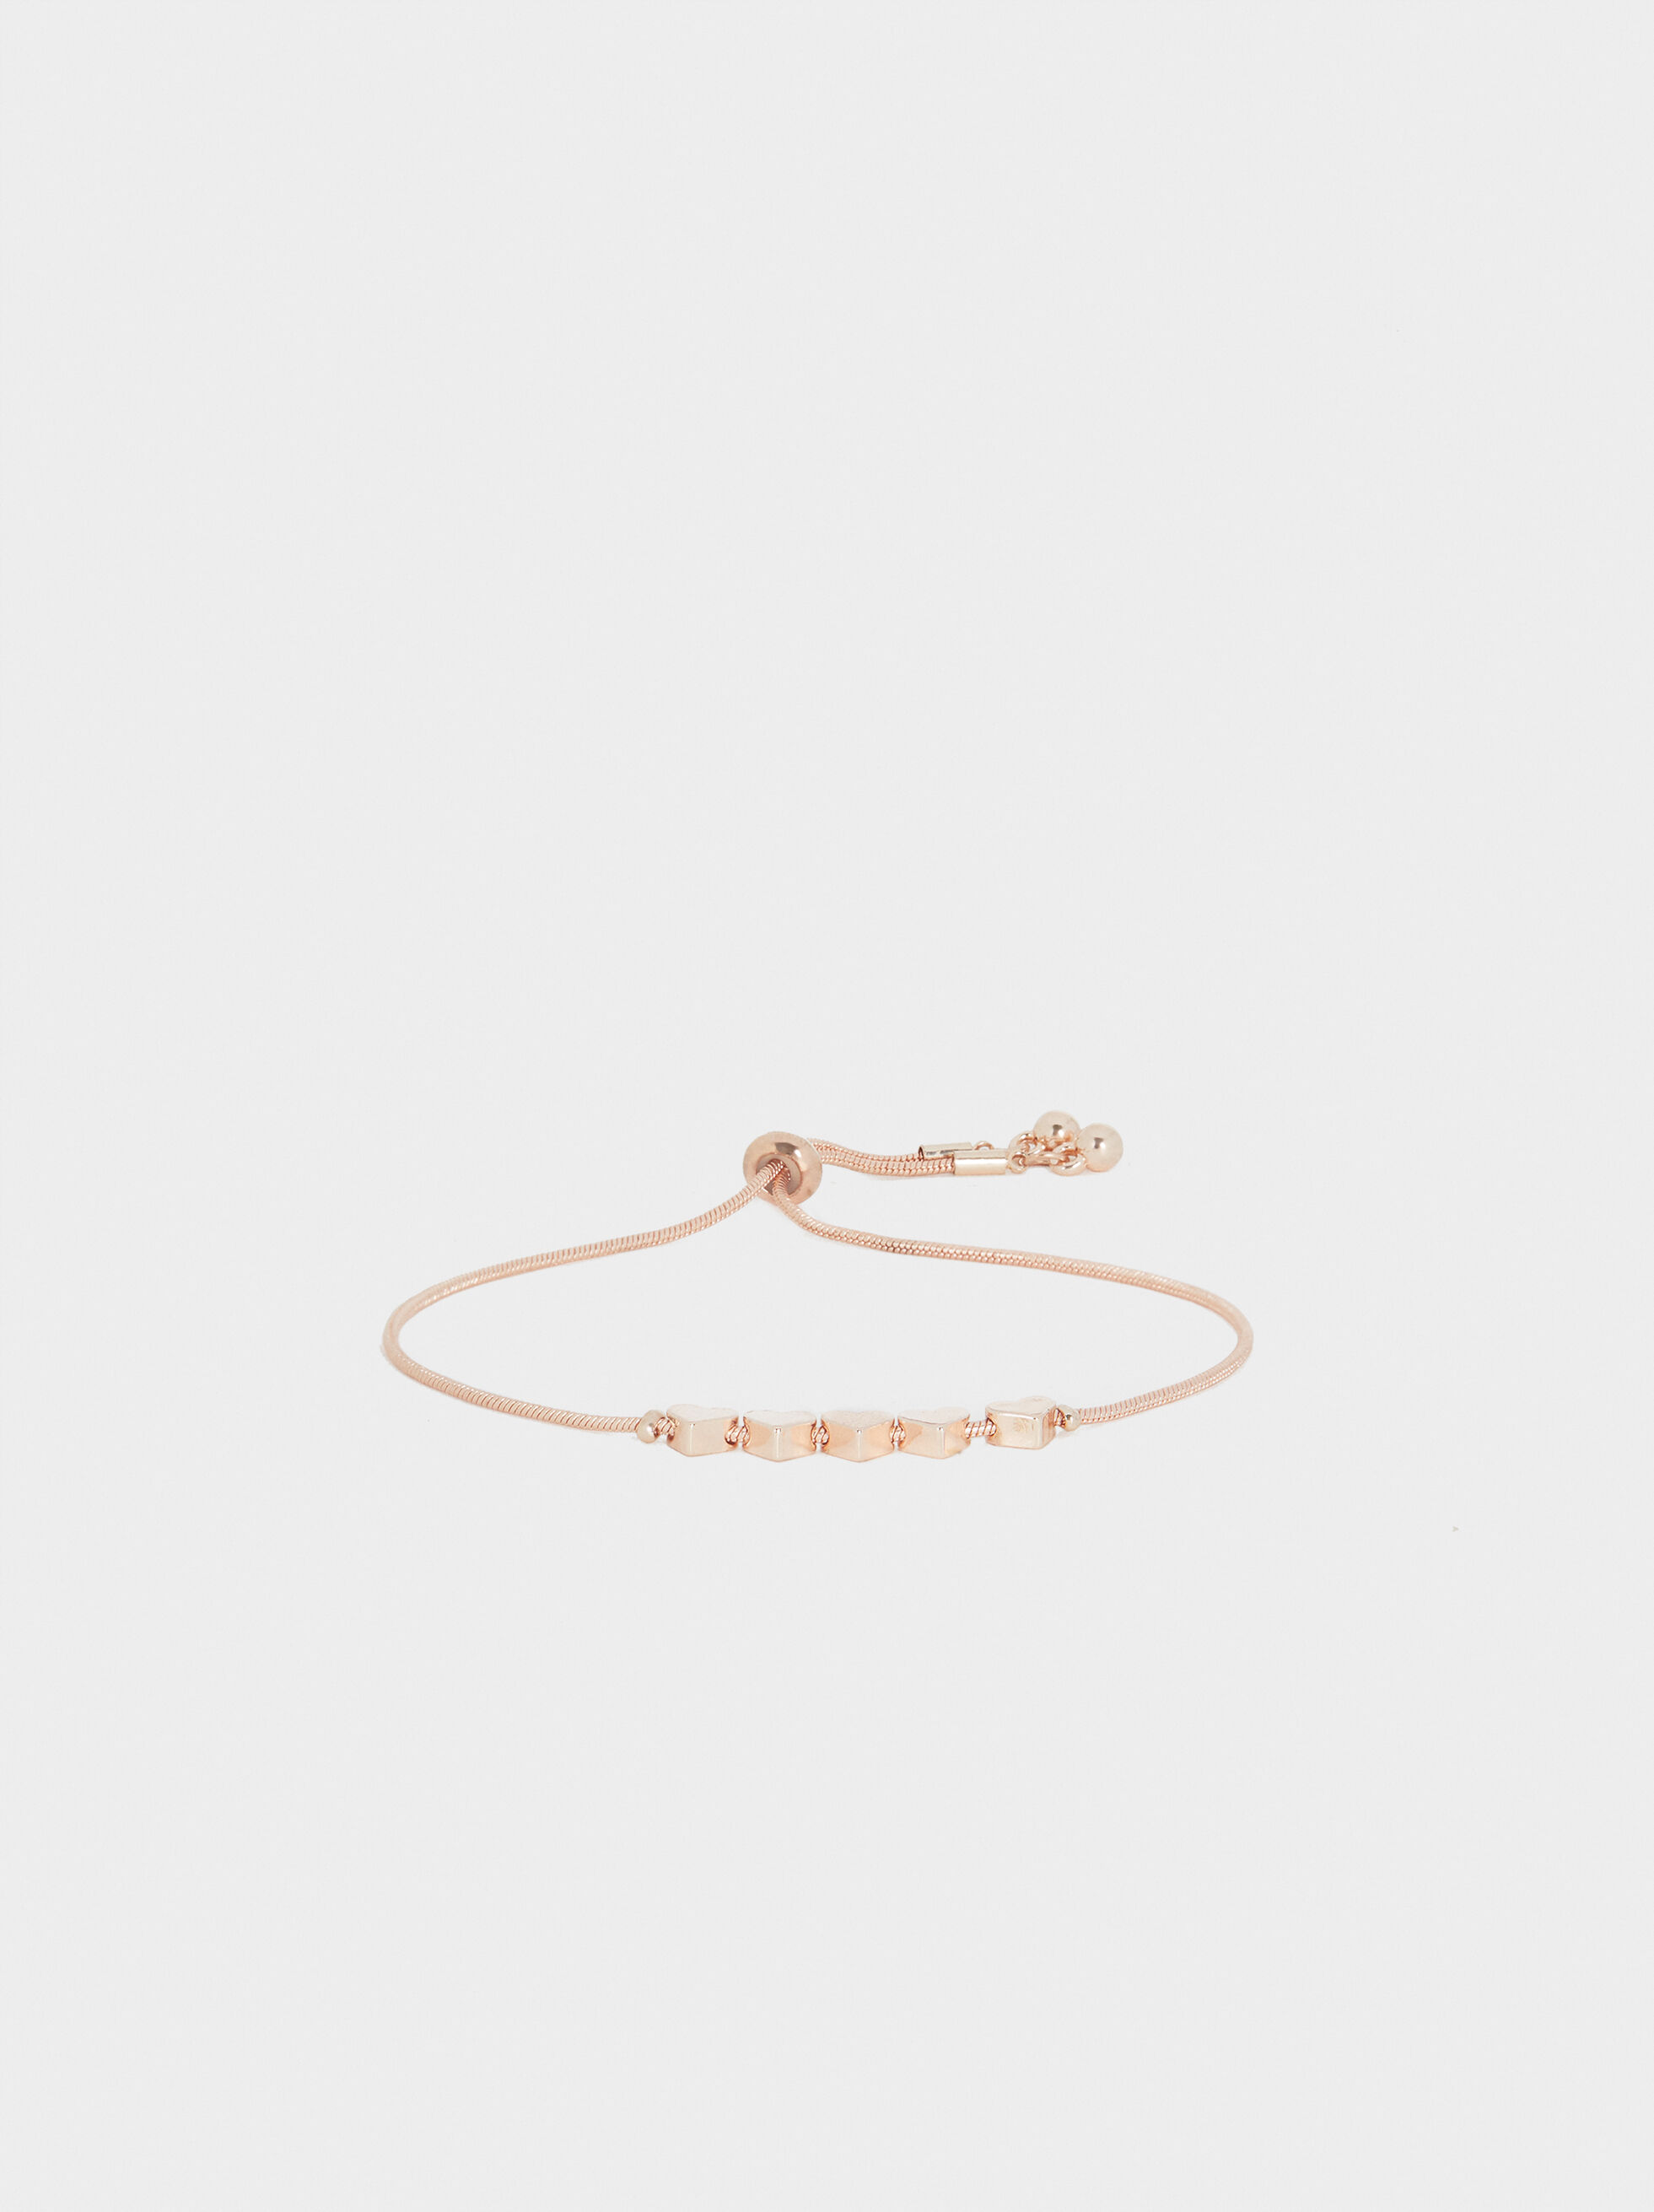 Rose Gold Adjustable Bracelet With Heart Detail, Orange, hi-res